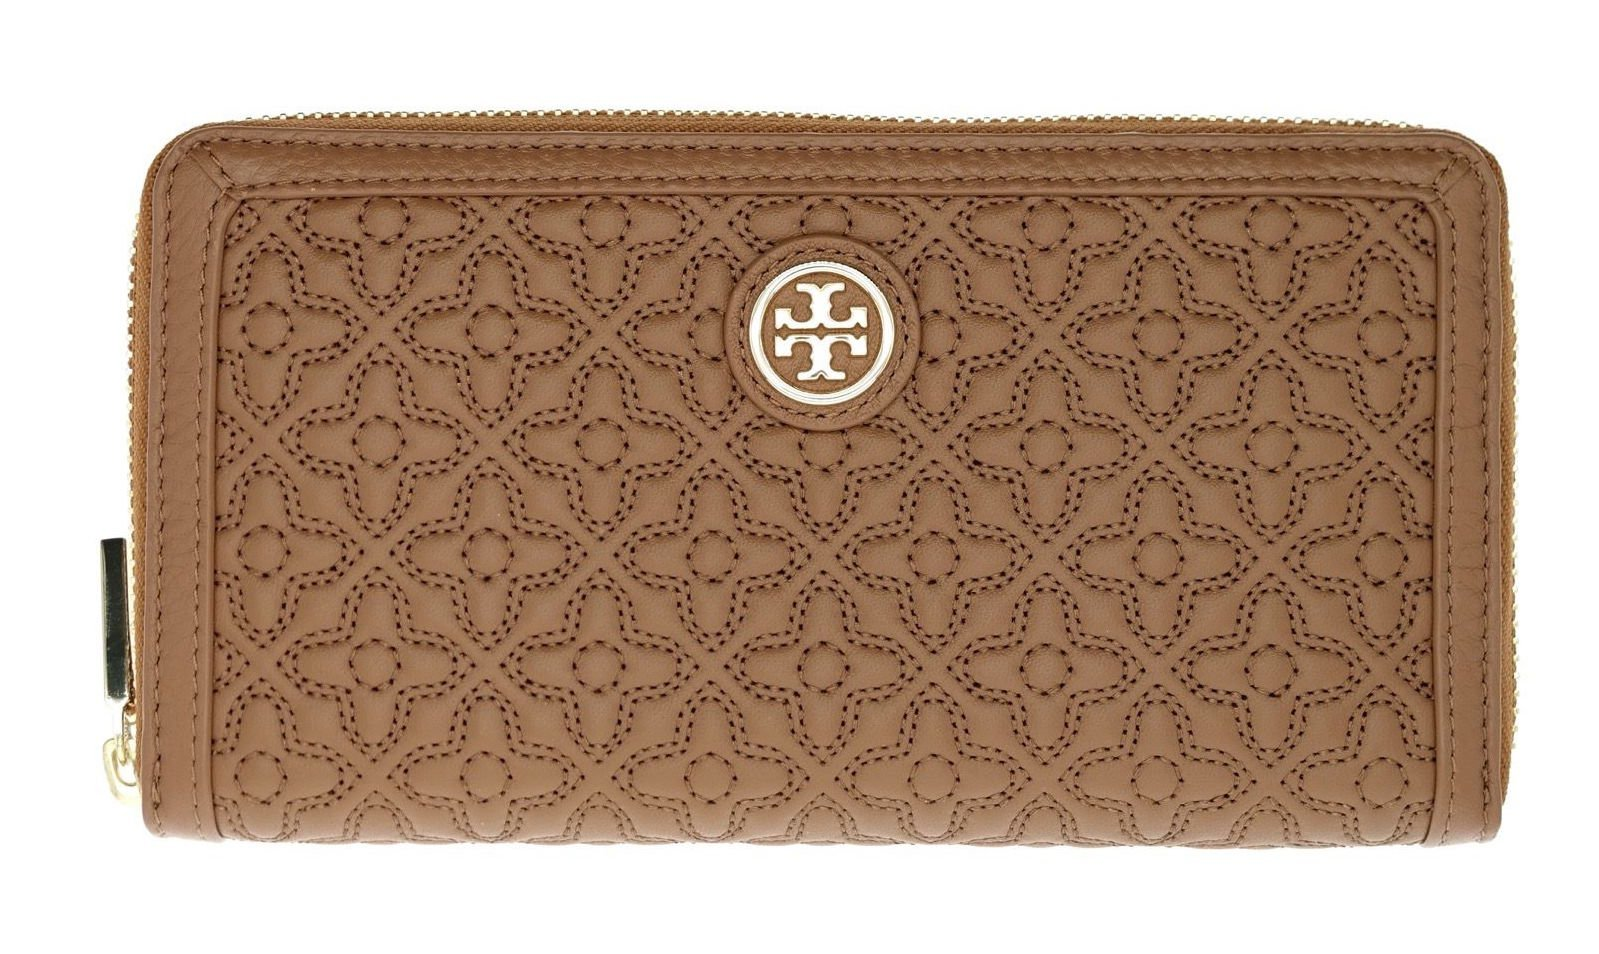 Tory Burch Bryant Zip Continental Leather Wallet Style No. 18169274 (Luggage) by Tory Burch